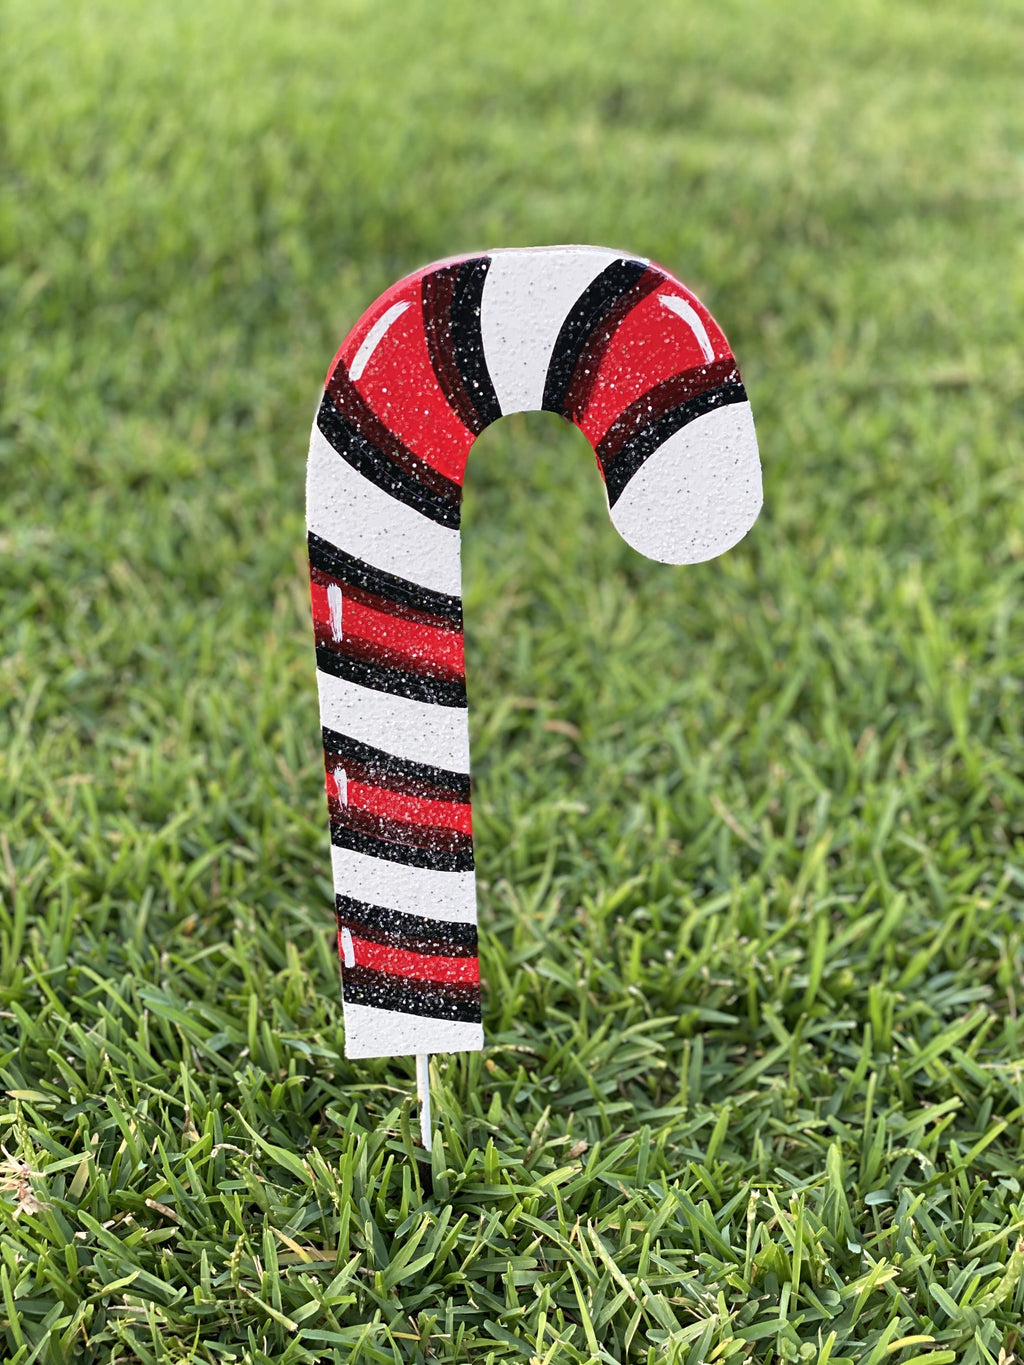 Christmas Candy cane facing right painted yard art design